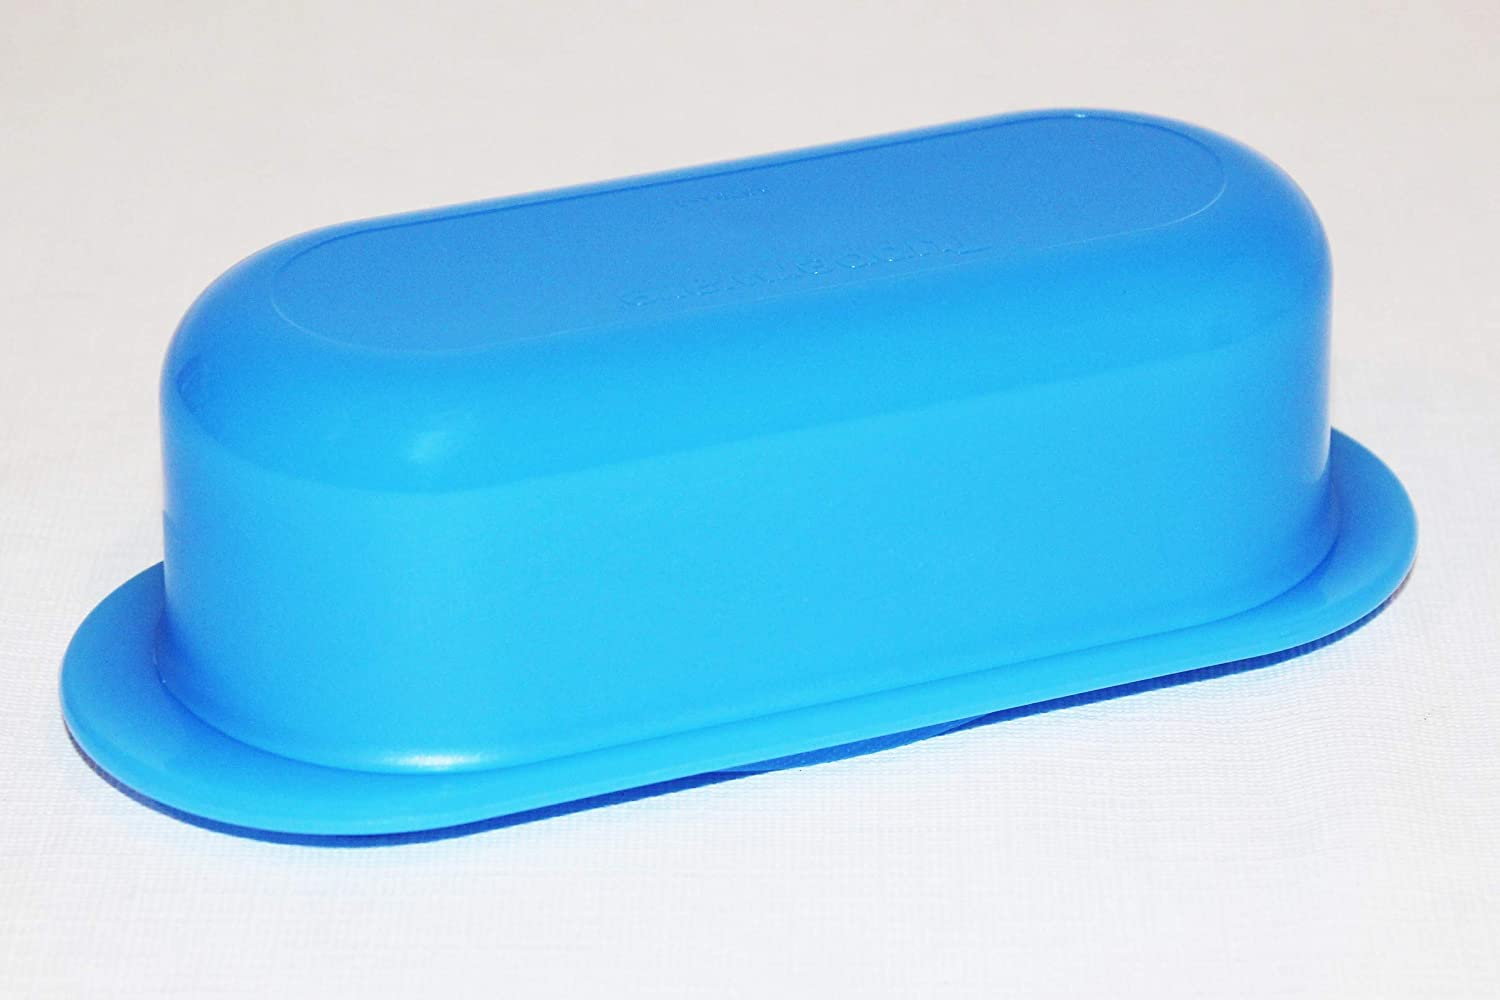 Tupperware (1) Butter Dish Open House Impressions Single Stick - Blue